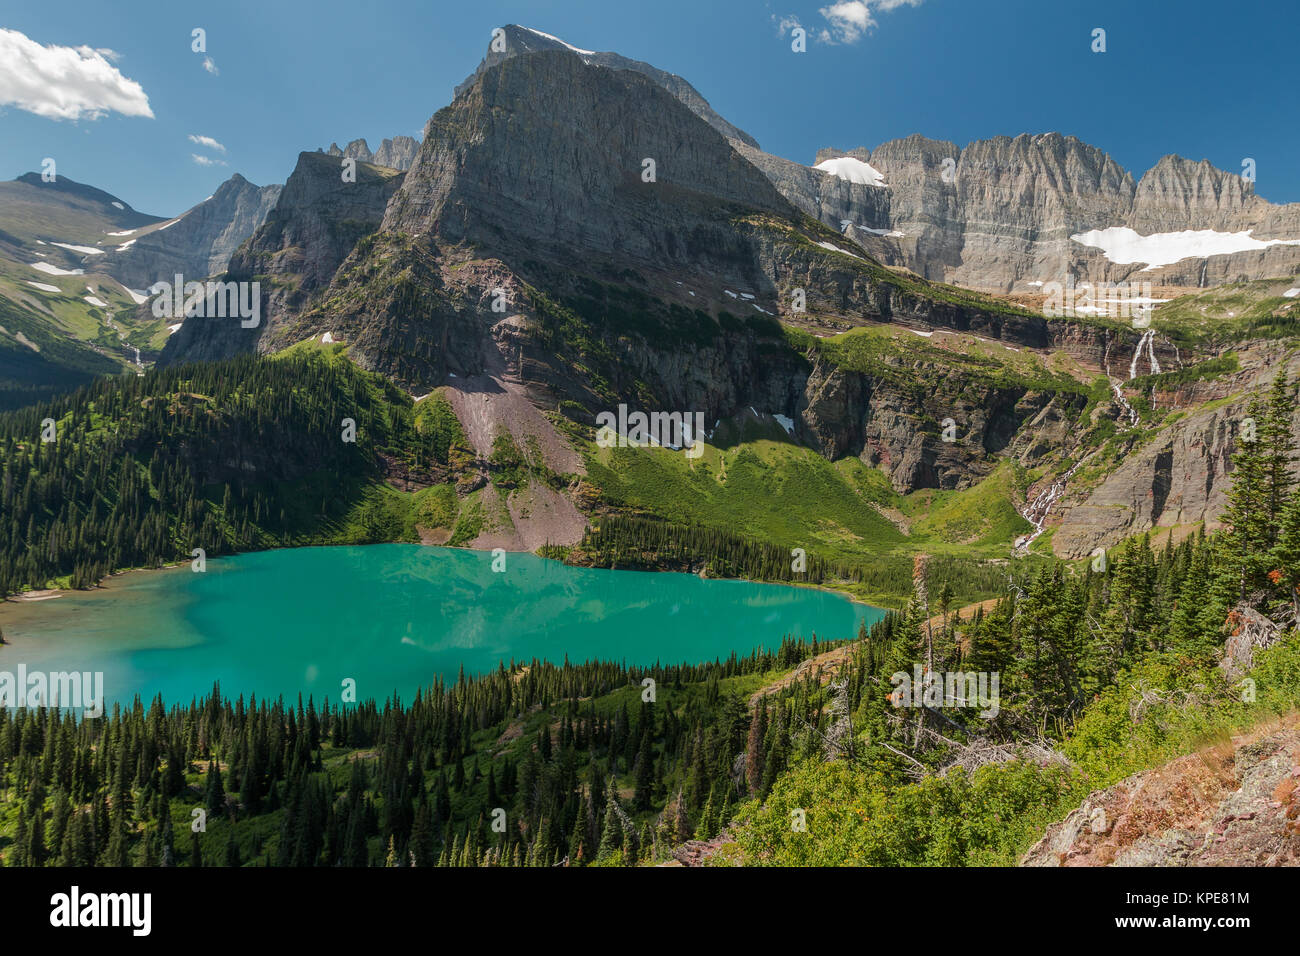 Grinnell Lake and the Angel Wing in Glacier National Park, Montana - Stock Image